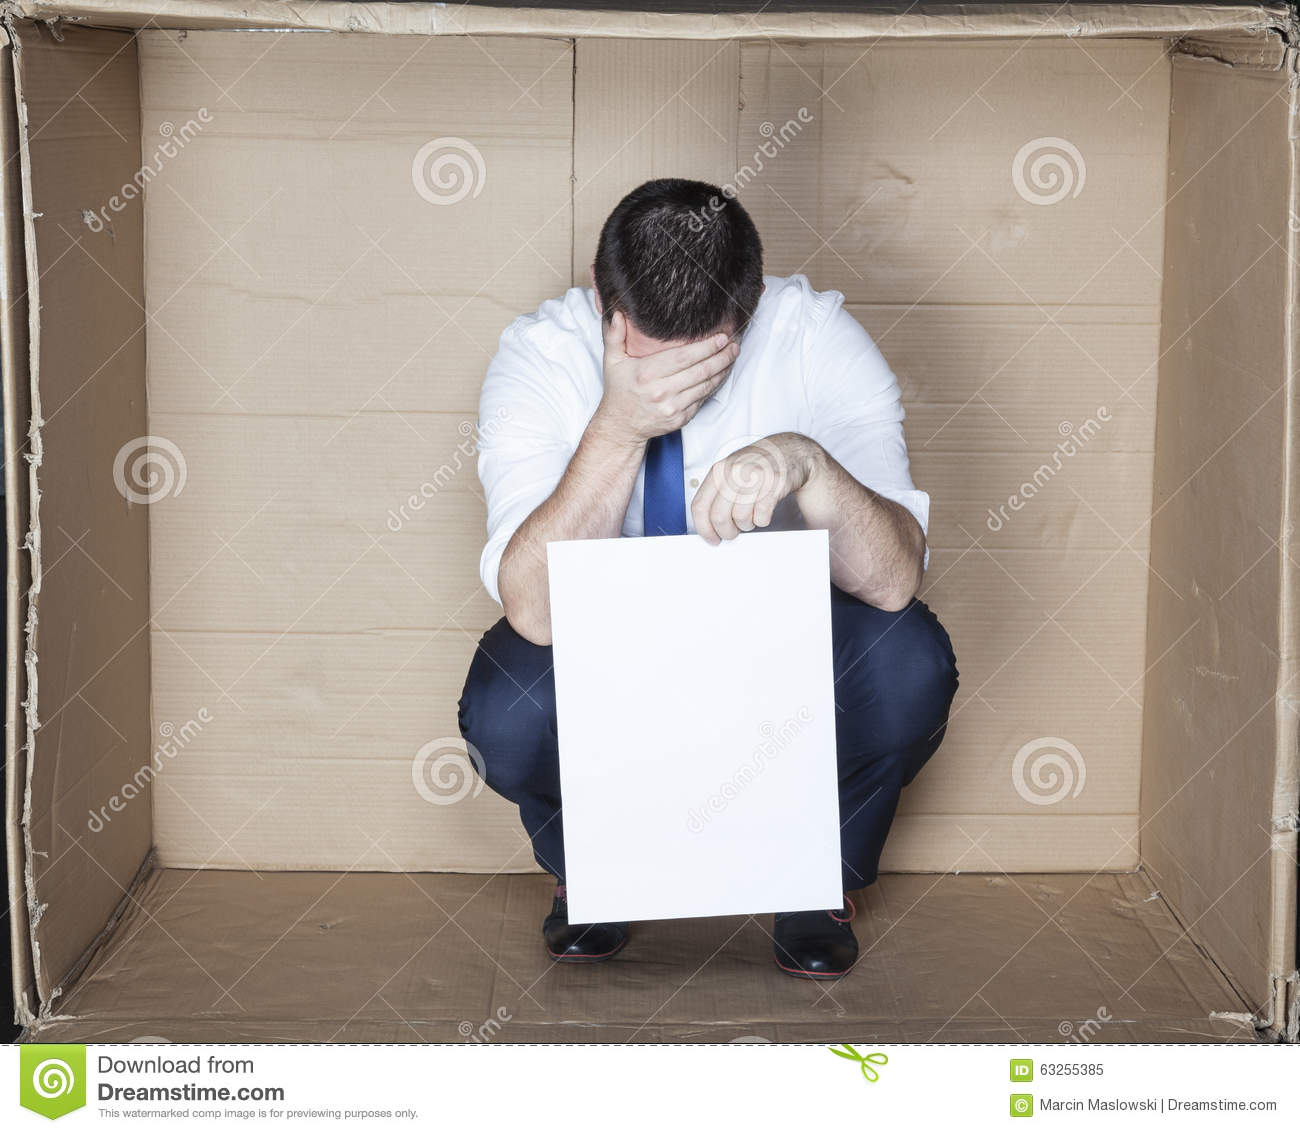 Businessman Unable To Find Work Stock Image - Image of ...